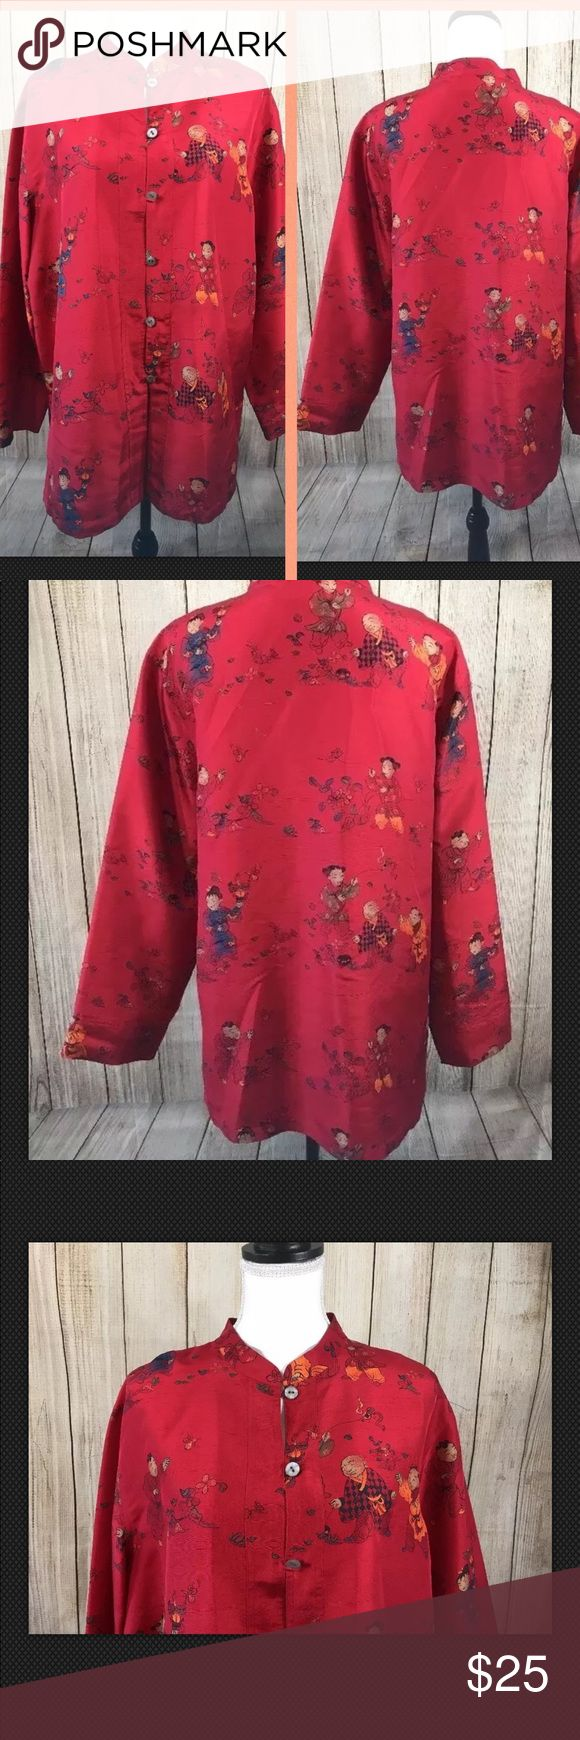 Chicos Design 3 100% silk Red Oriental Blouse Chicos Design 3 100% silk Red Oriental Style Blouse Women's Size Large Length from top of shoulder to bottom 28 inches  under arm to under arm 23 inches Thank you for looking. Please check out our other fashion find a store Chico's Tops Blouses